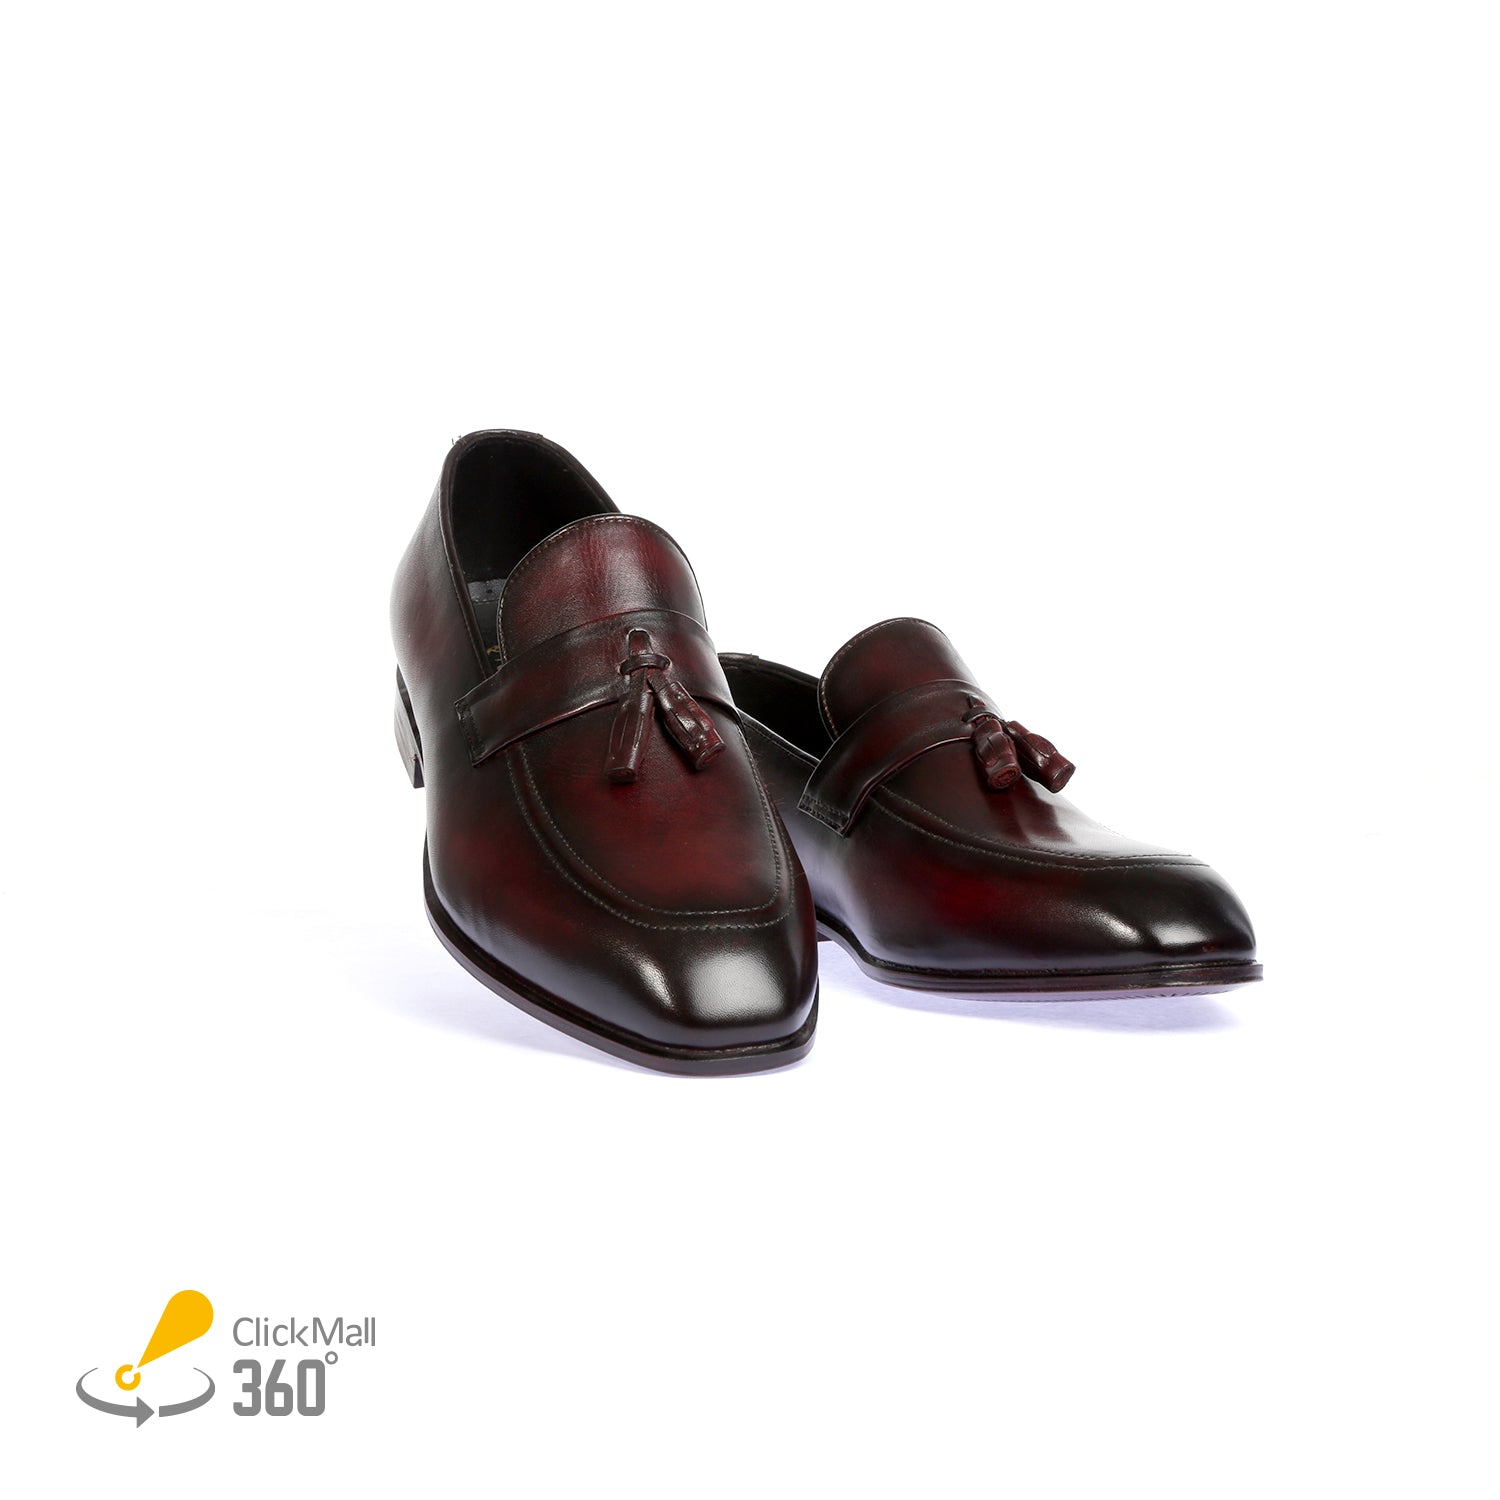 Pure Leather Hand Painted Shoes - Ox-blood/Black